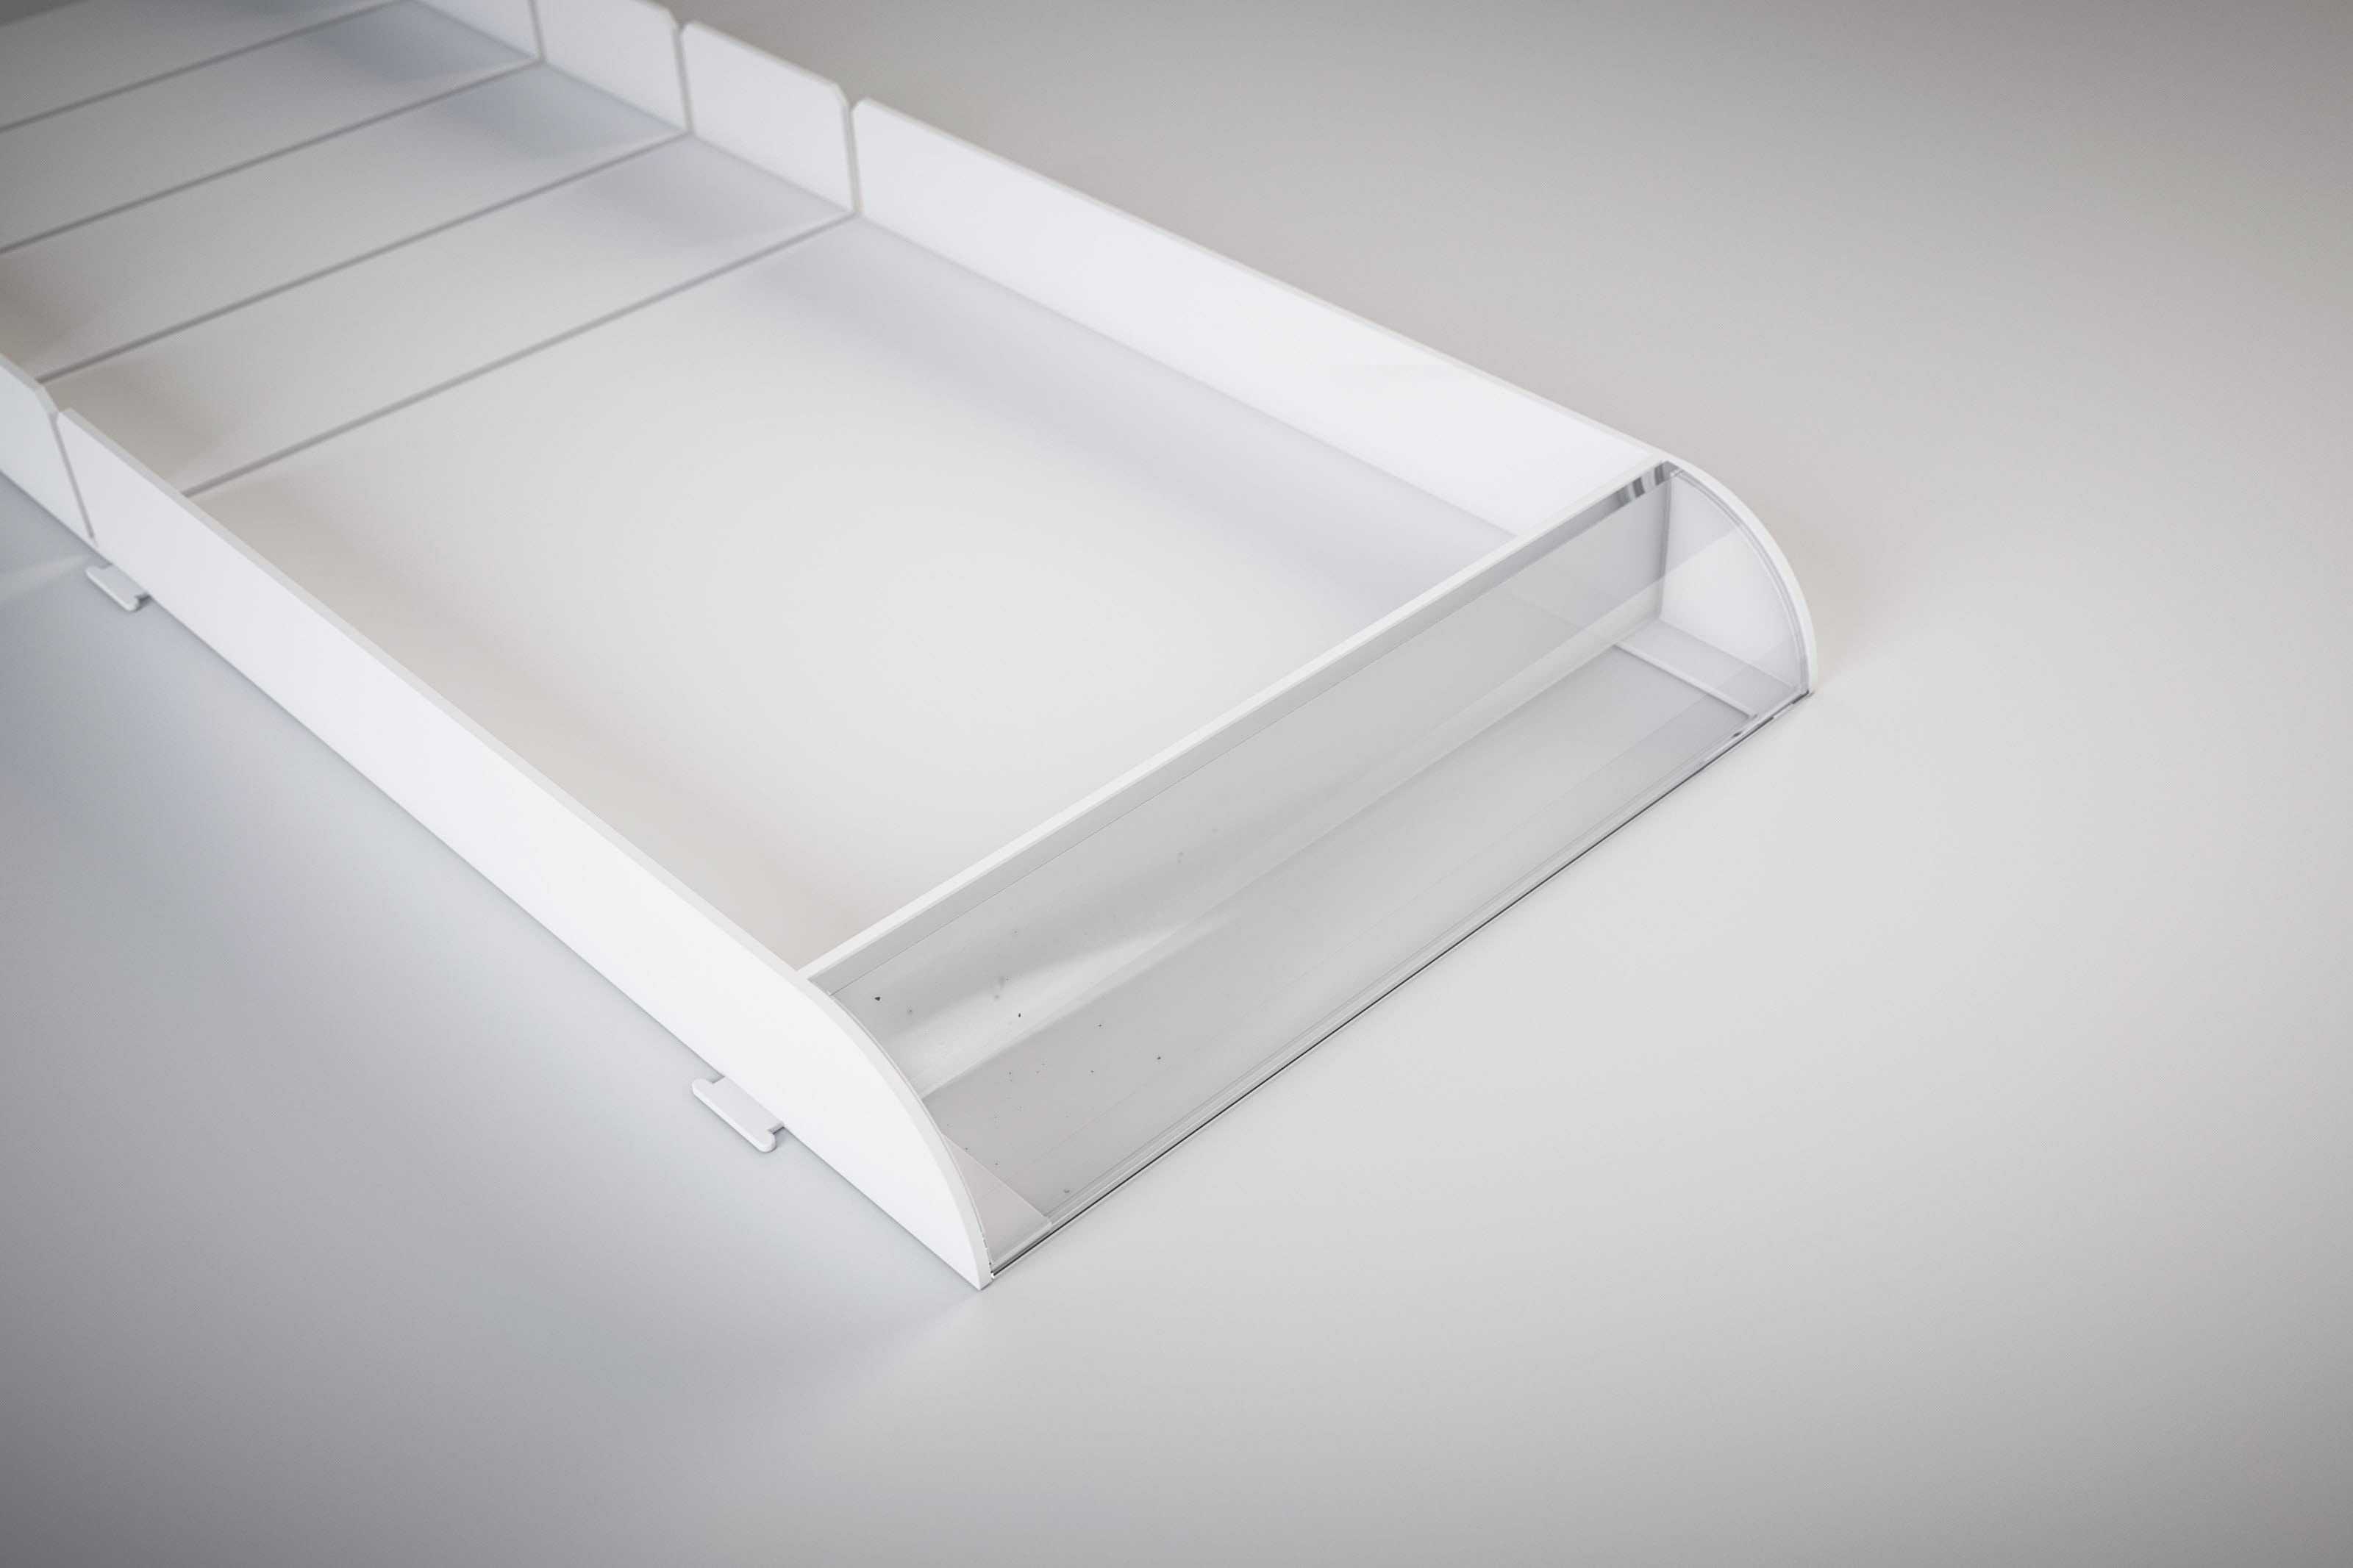 Shelf-tray.jpg